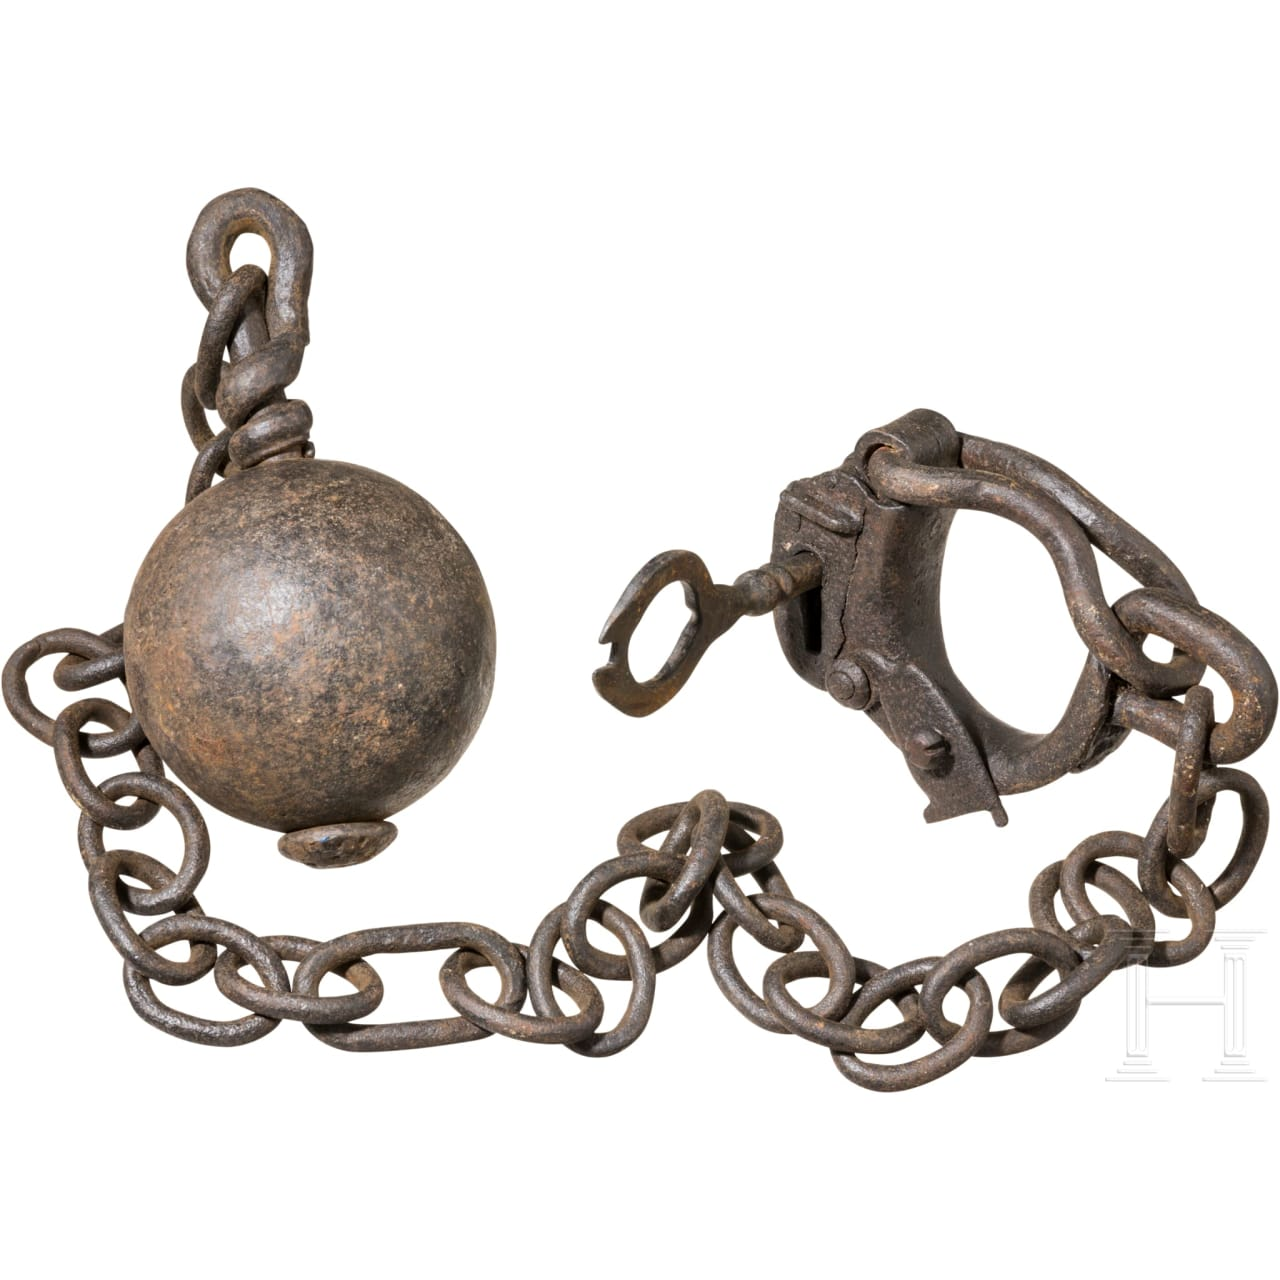 A heavy ball and chain, 18th/19th century